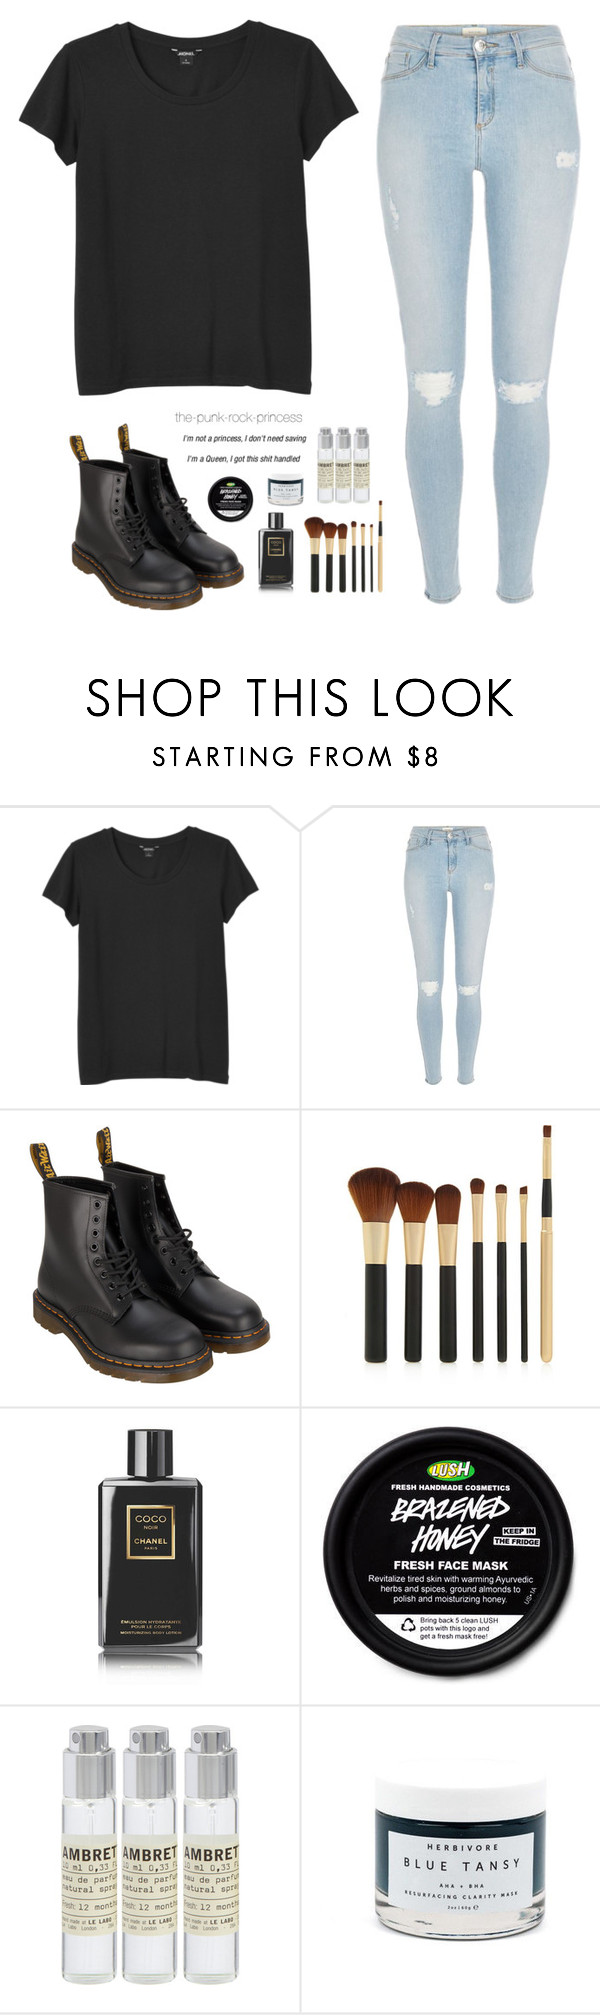 """""""Untitled #123"""" by the-punk-rock-princess ❤ liked on Polyvore featuring Monki, River Island, Dr. Martens, Forever 21, Chanel, Le Labo and Herbivore"""